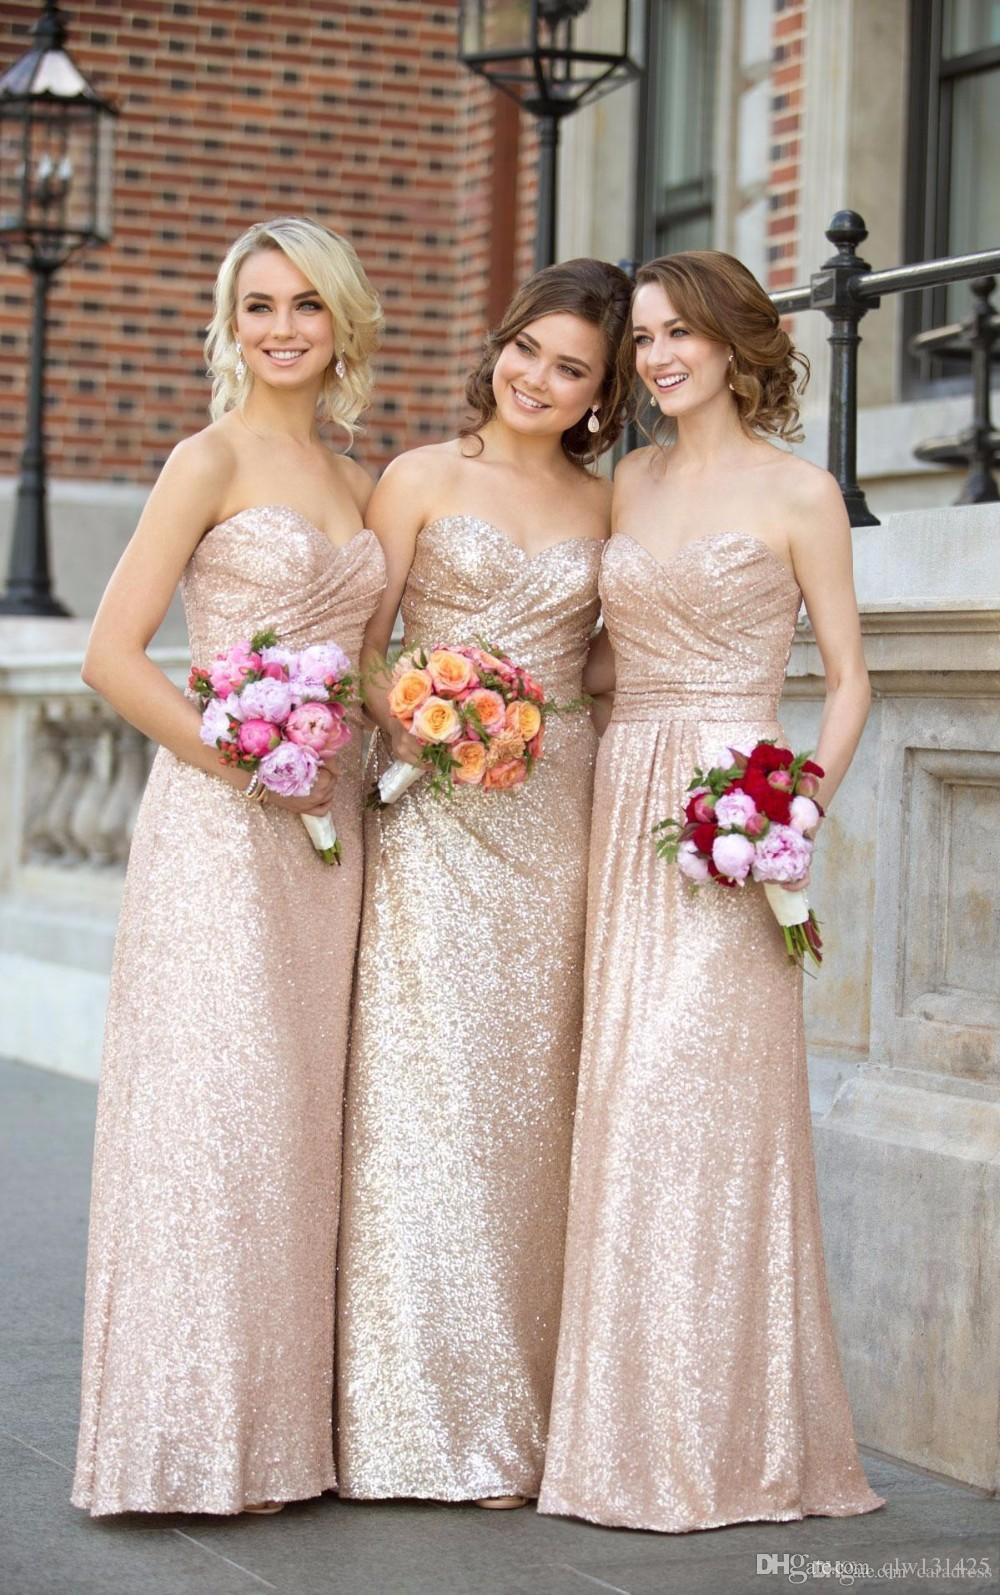 Gold sequin bridesmaid dresses rose gold mermaid cheap long gold sequin bridesmaid dresses rose gold mermaid cheap long wedding party gowns formal maid honor dress be18 bridesmaid dresses online champagne bridesmaid ombrellifo Gallery